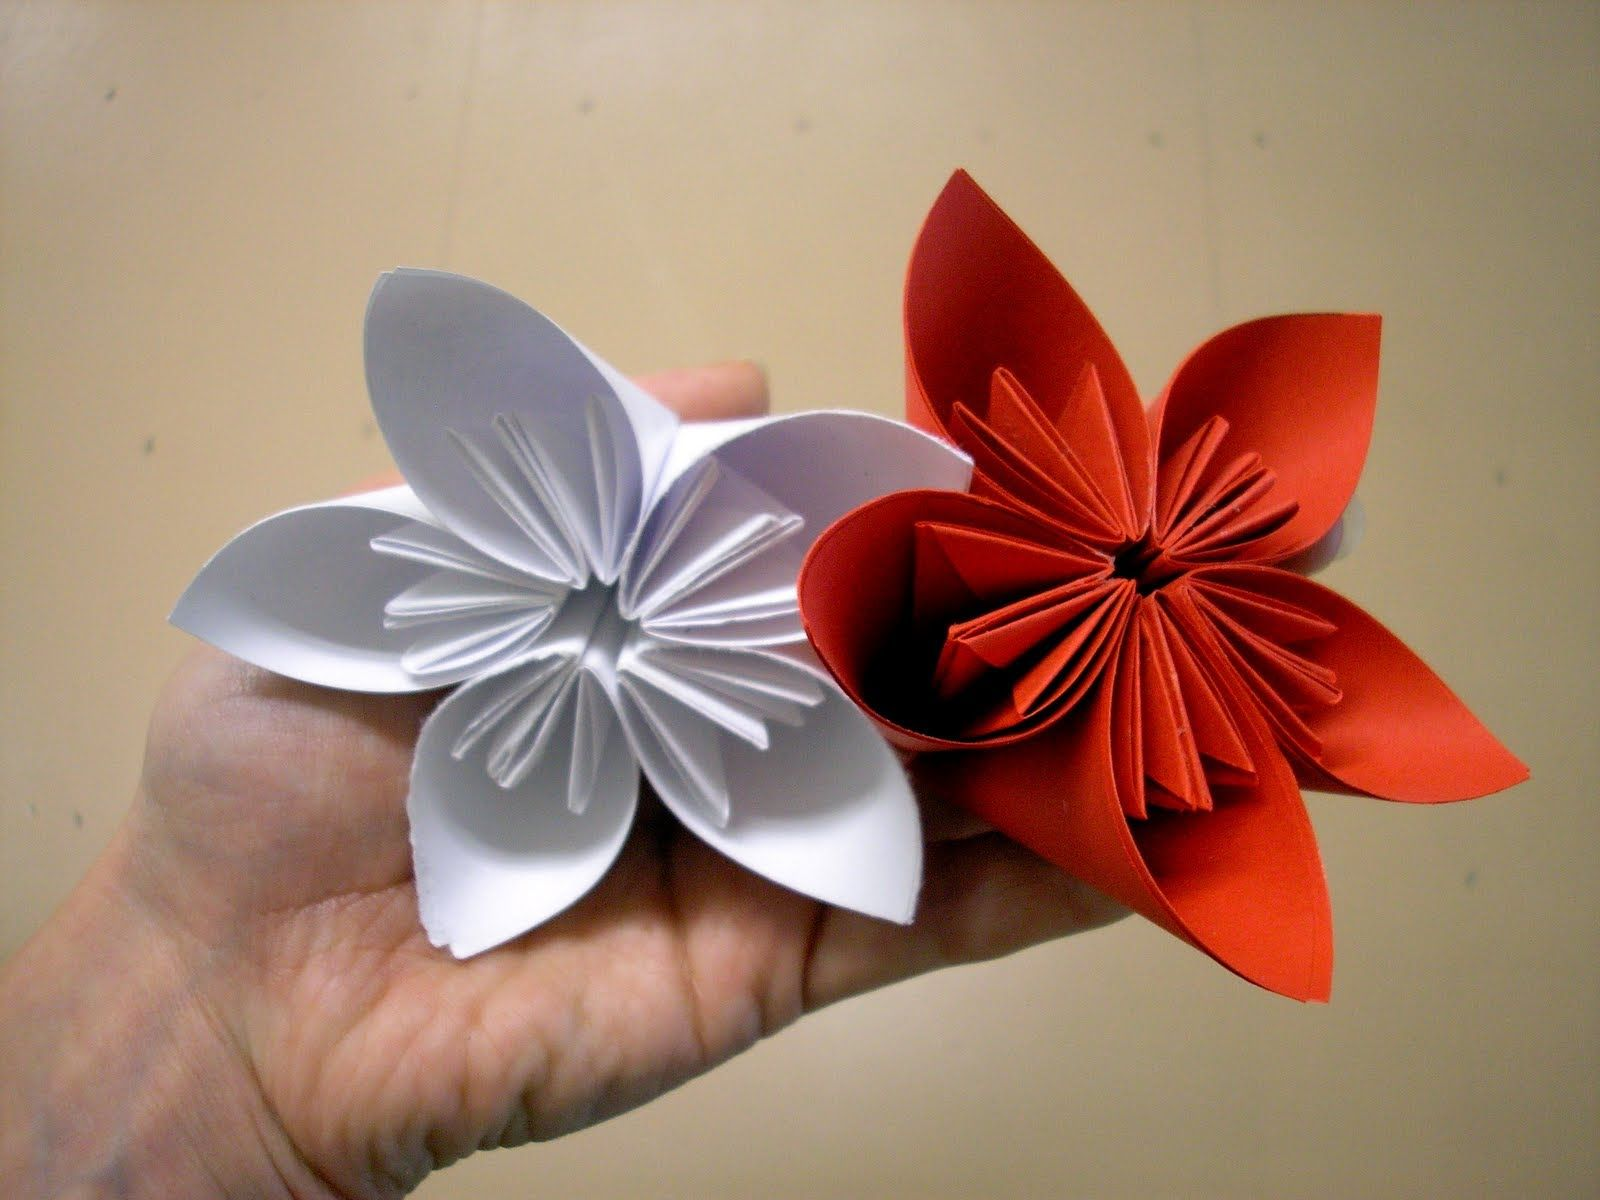 How to make origami kusudama flower step by step - Origami Flowers For Beginners How To Make Origami Flowers Very Easy Origami Flowers Tutorialflower Tutorialsimple